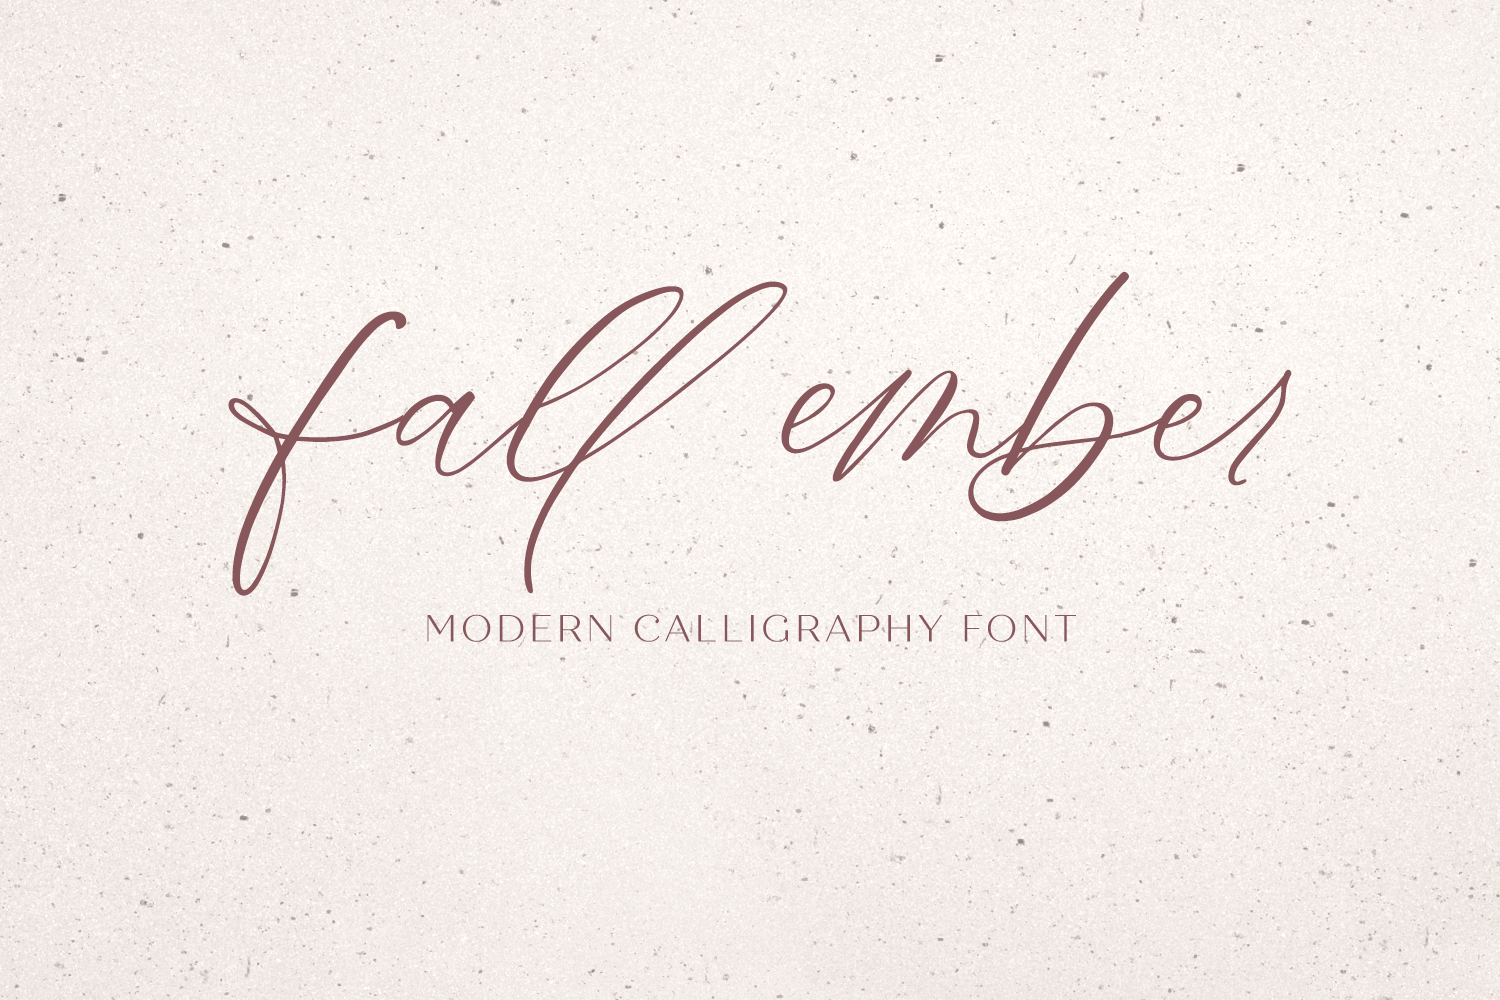 Fall Ember Calligraphy Script Font example image 1